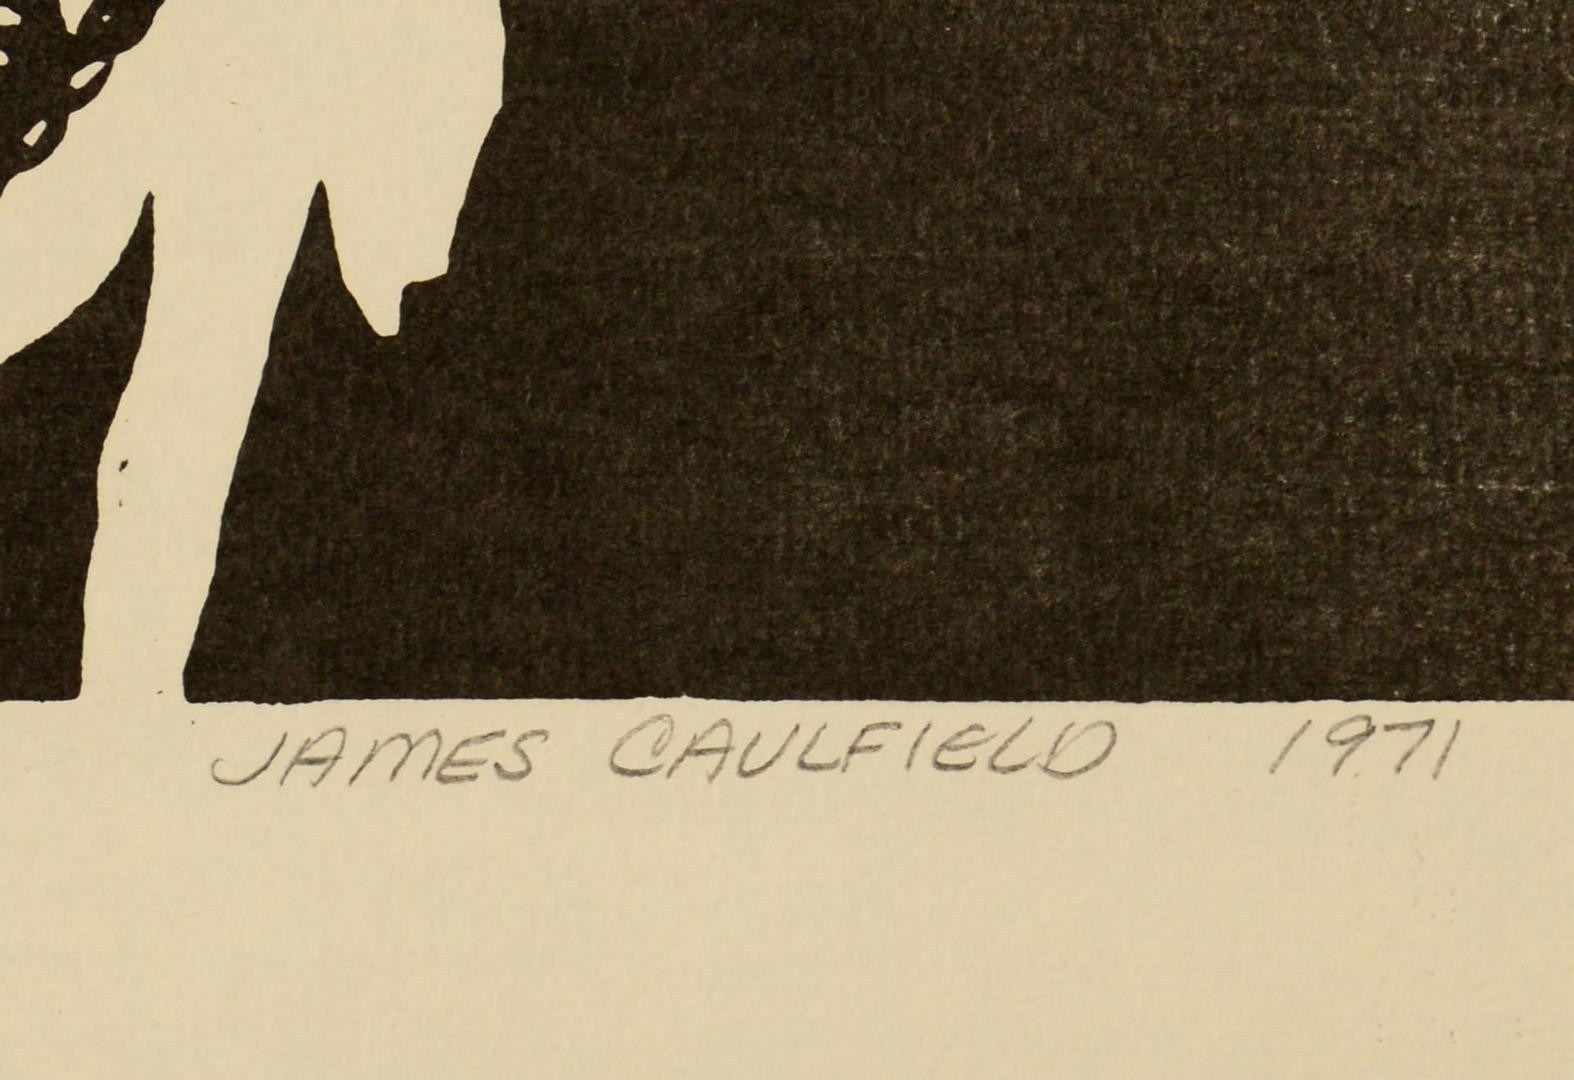 Lot 841: 4 Jazz Related Portraits by James Caulfield